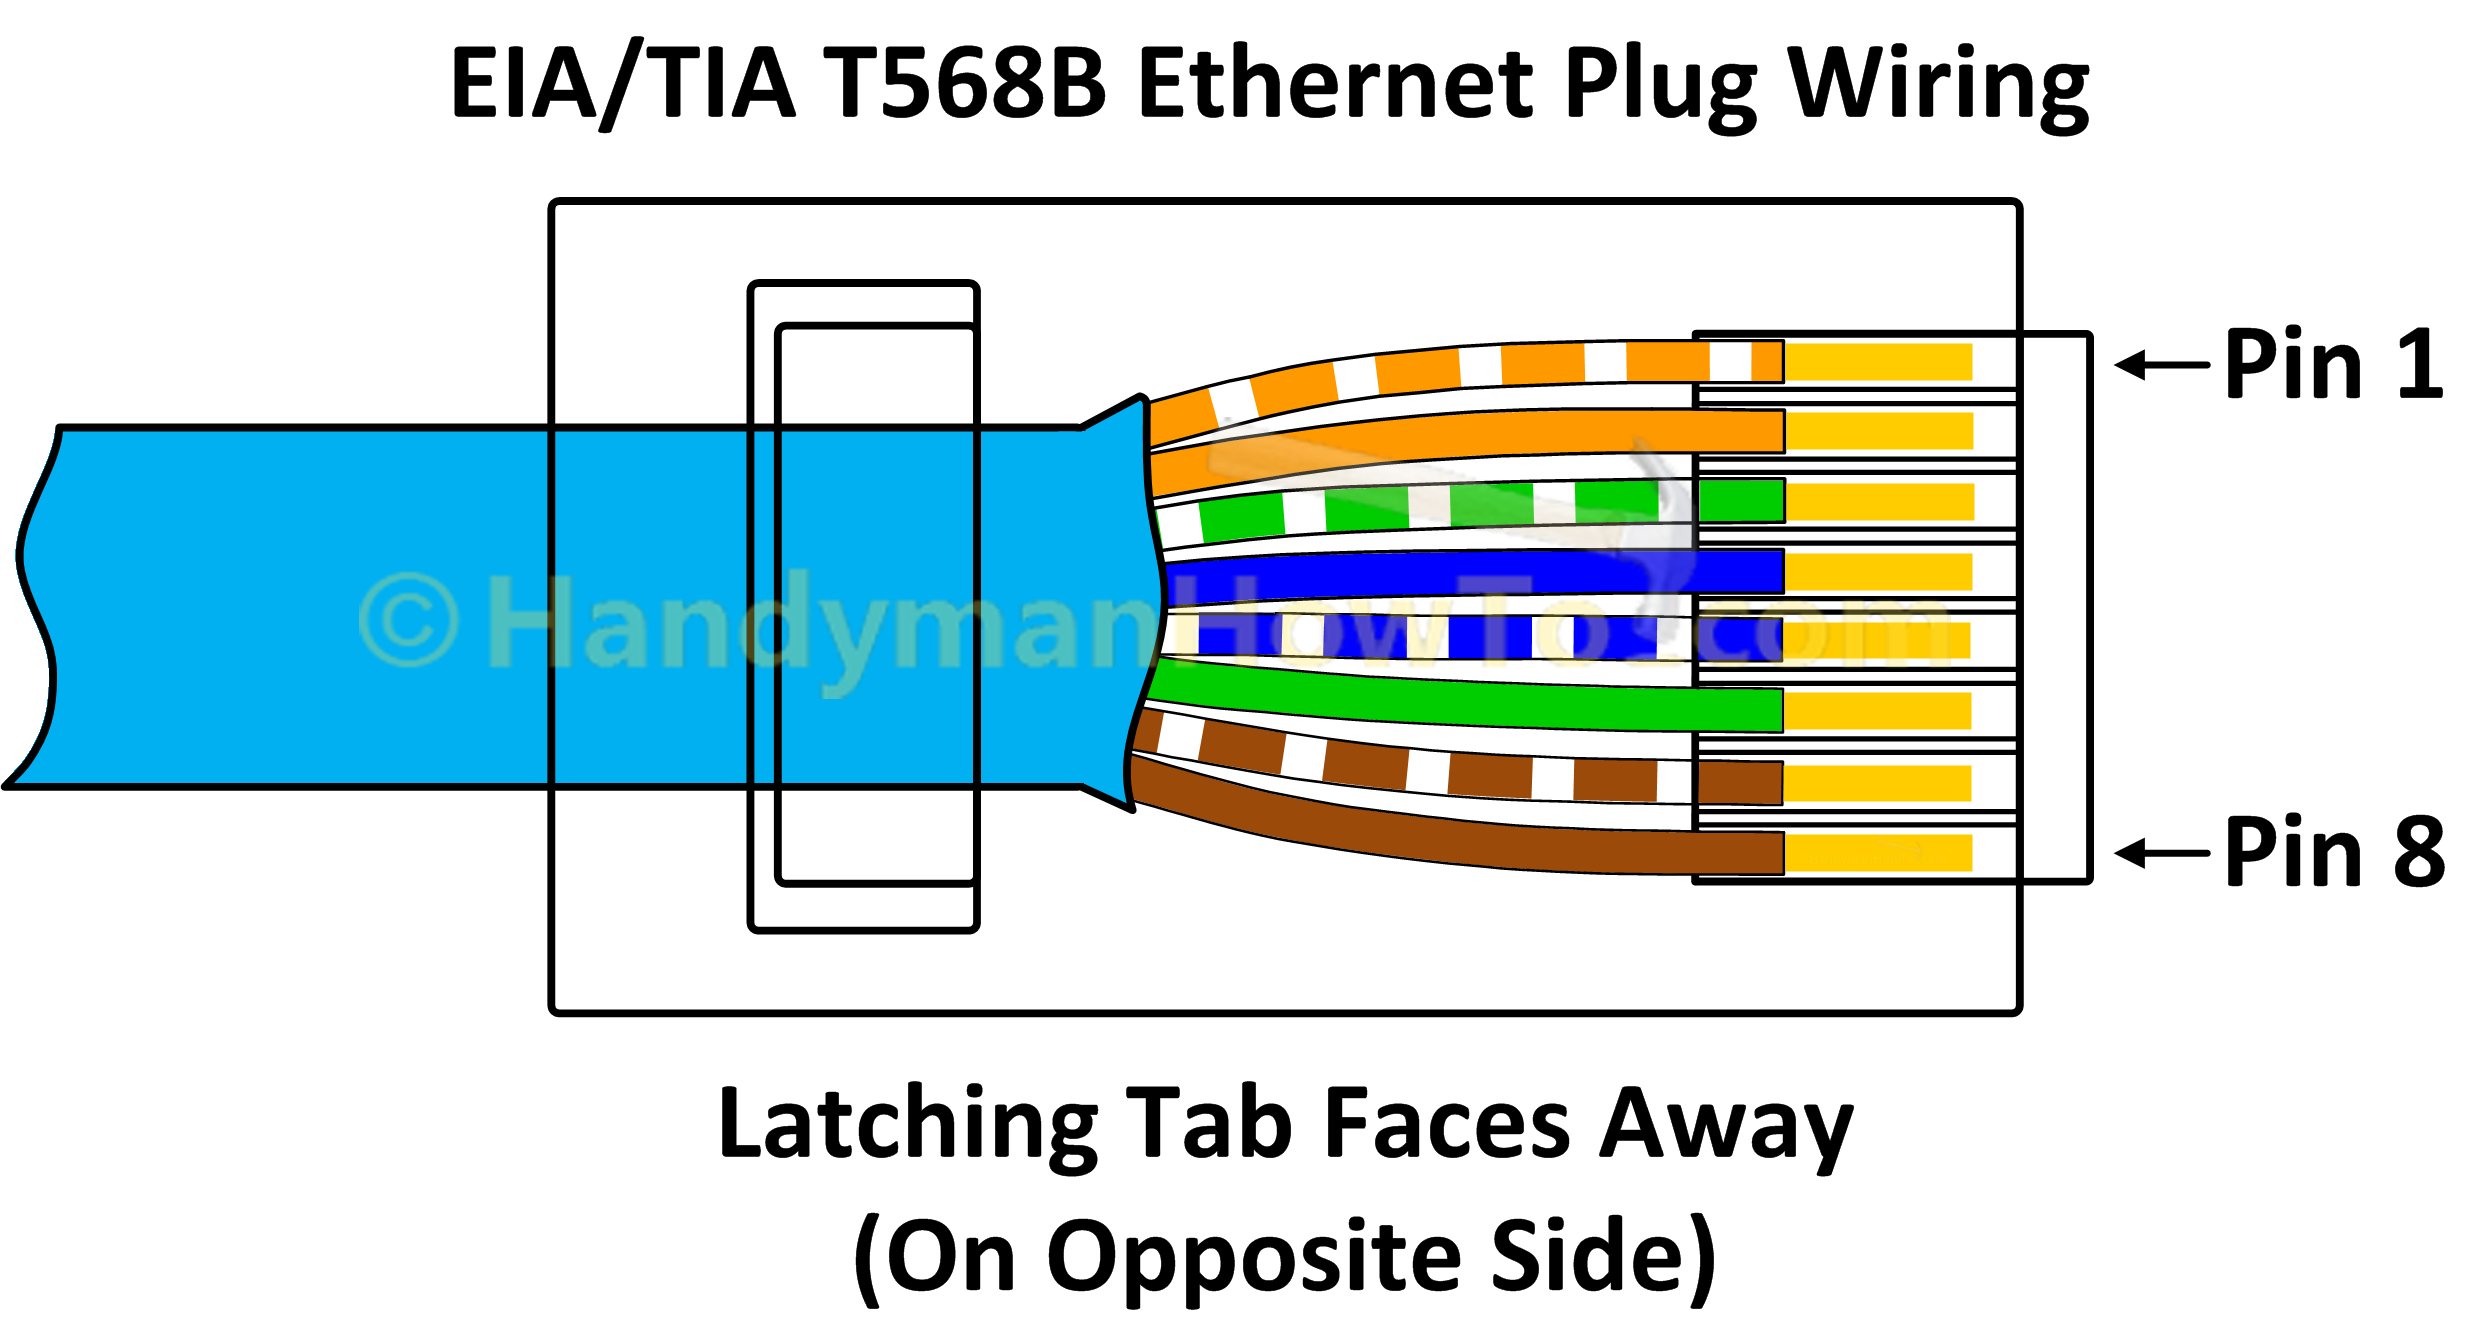 Rj45 Wiring Diagram Cat6 Cat5 - Wiring Diagrams Click - Usb To Cat 5 Wiring Diagram